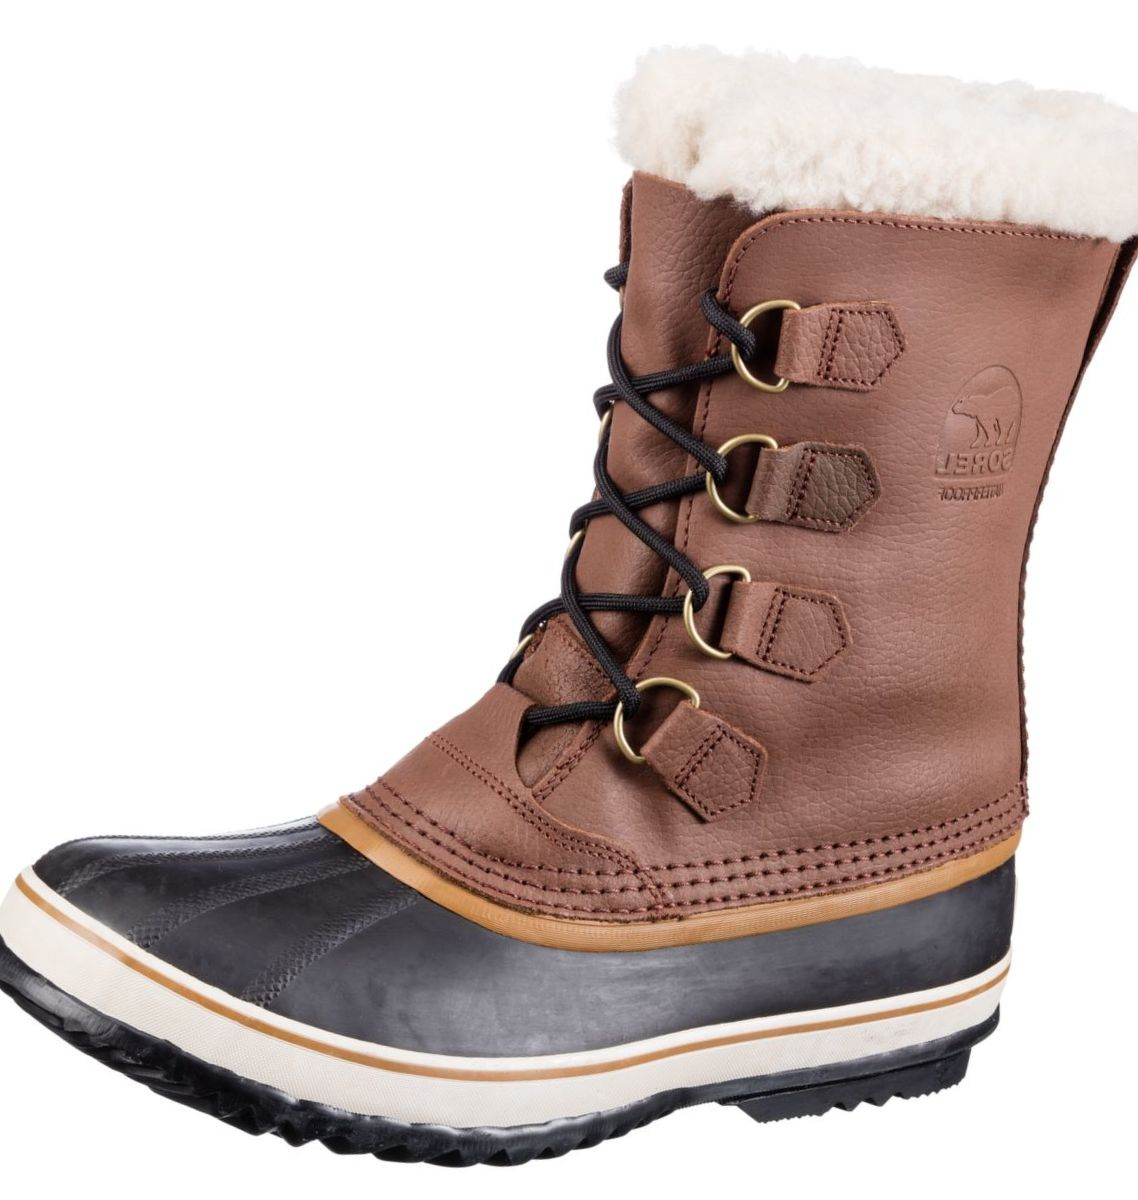 Sorel® Men's 1964 Pac T™ Waterproof Insulated Pac Boots